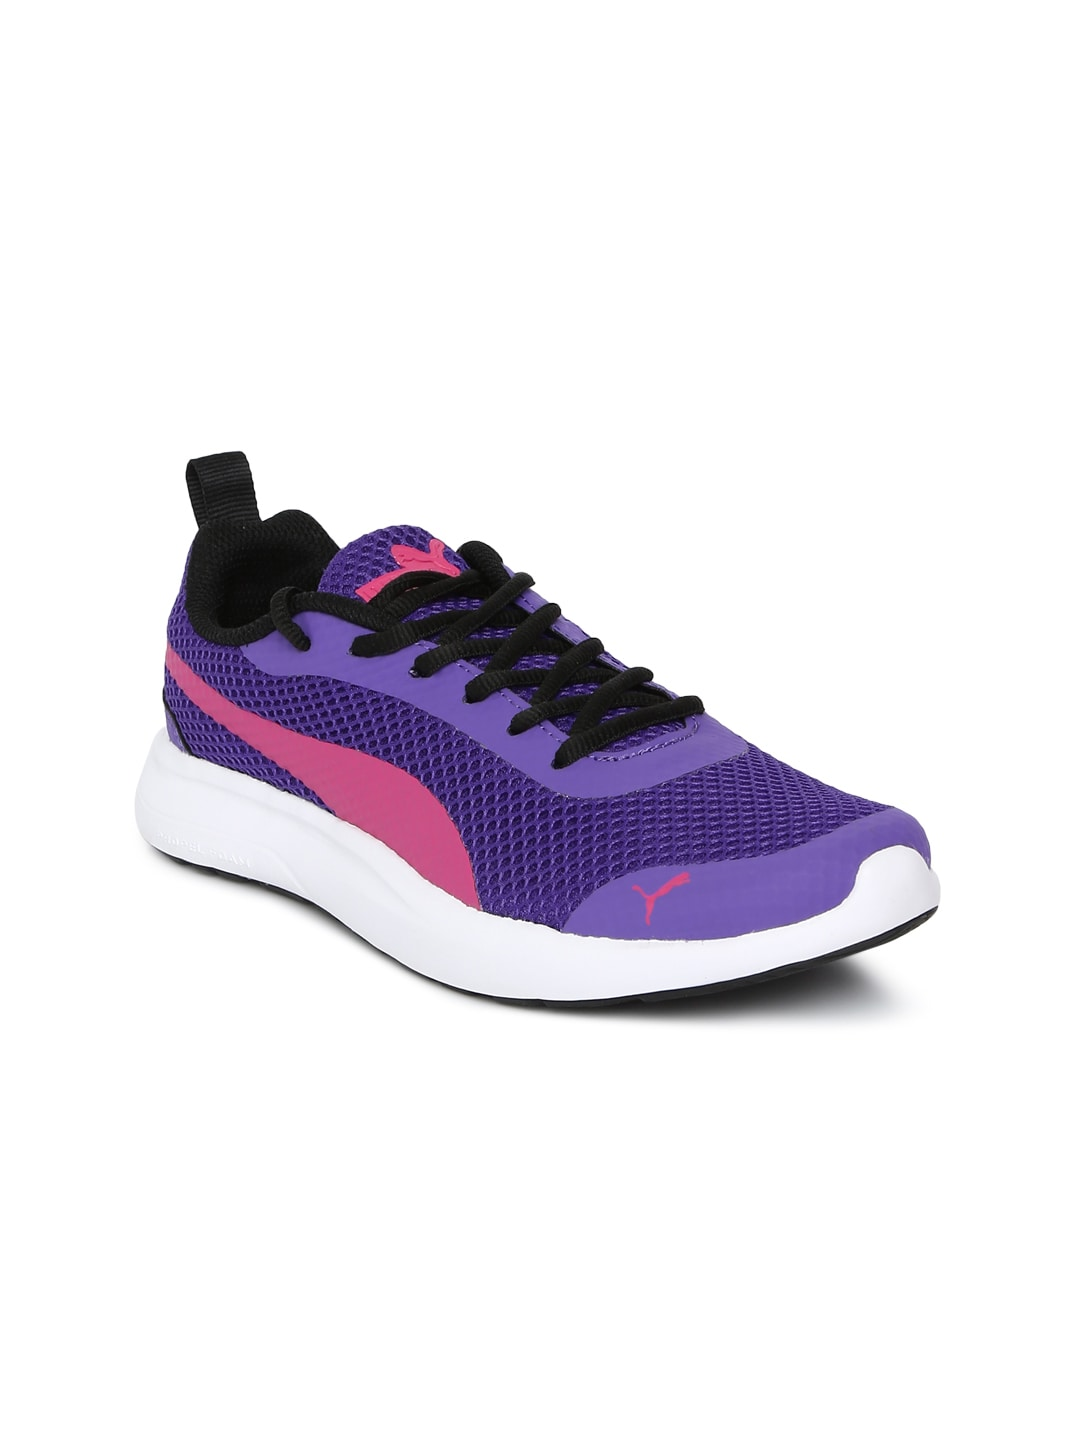 dfbebd35af237 Puma Women Purple Echelon V1 IDP Sneakers